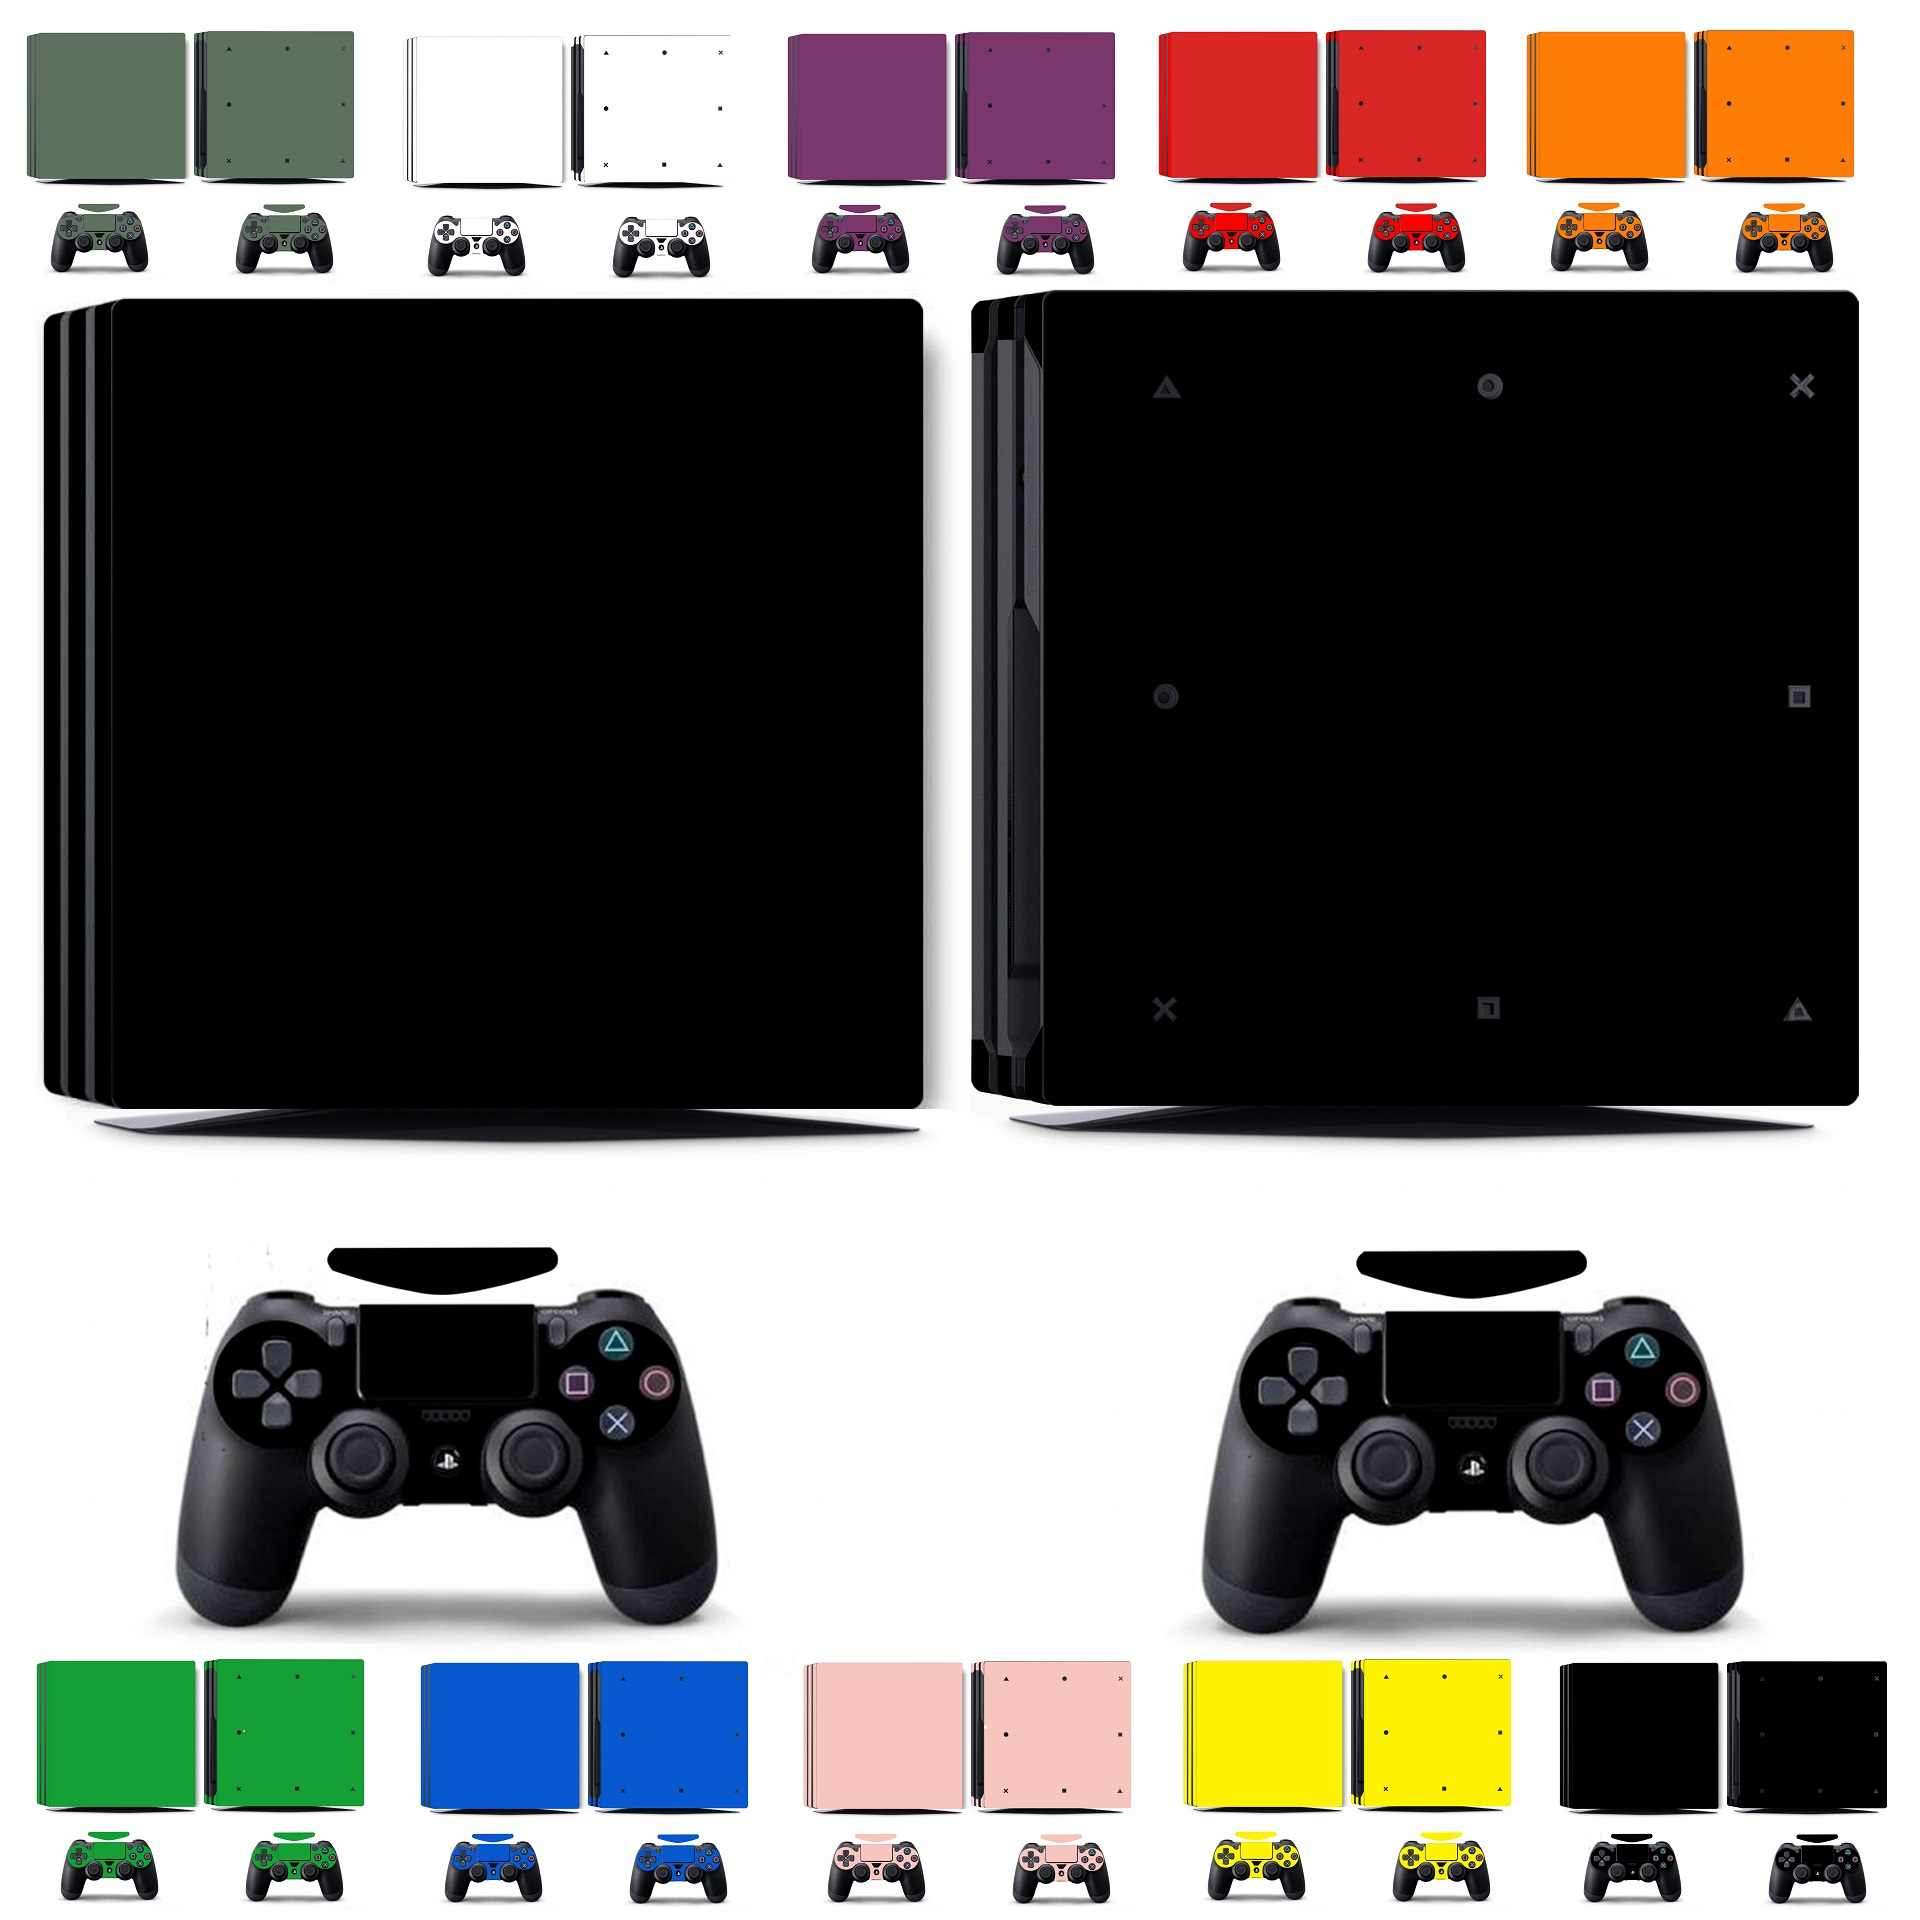 Ten Pure Clean Solid Colors Vinyl Skin Sticker for Sony PS4 PRO PlayStation 4 PRO and 2 controller skins